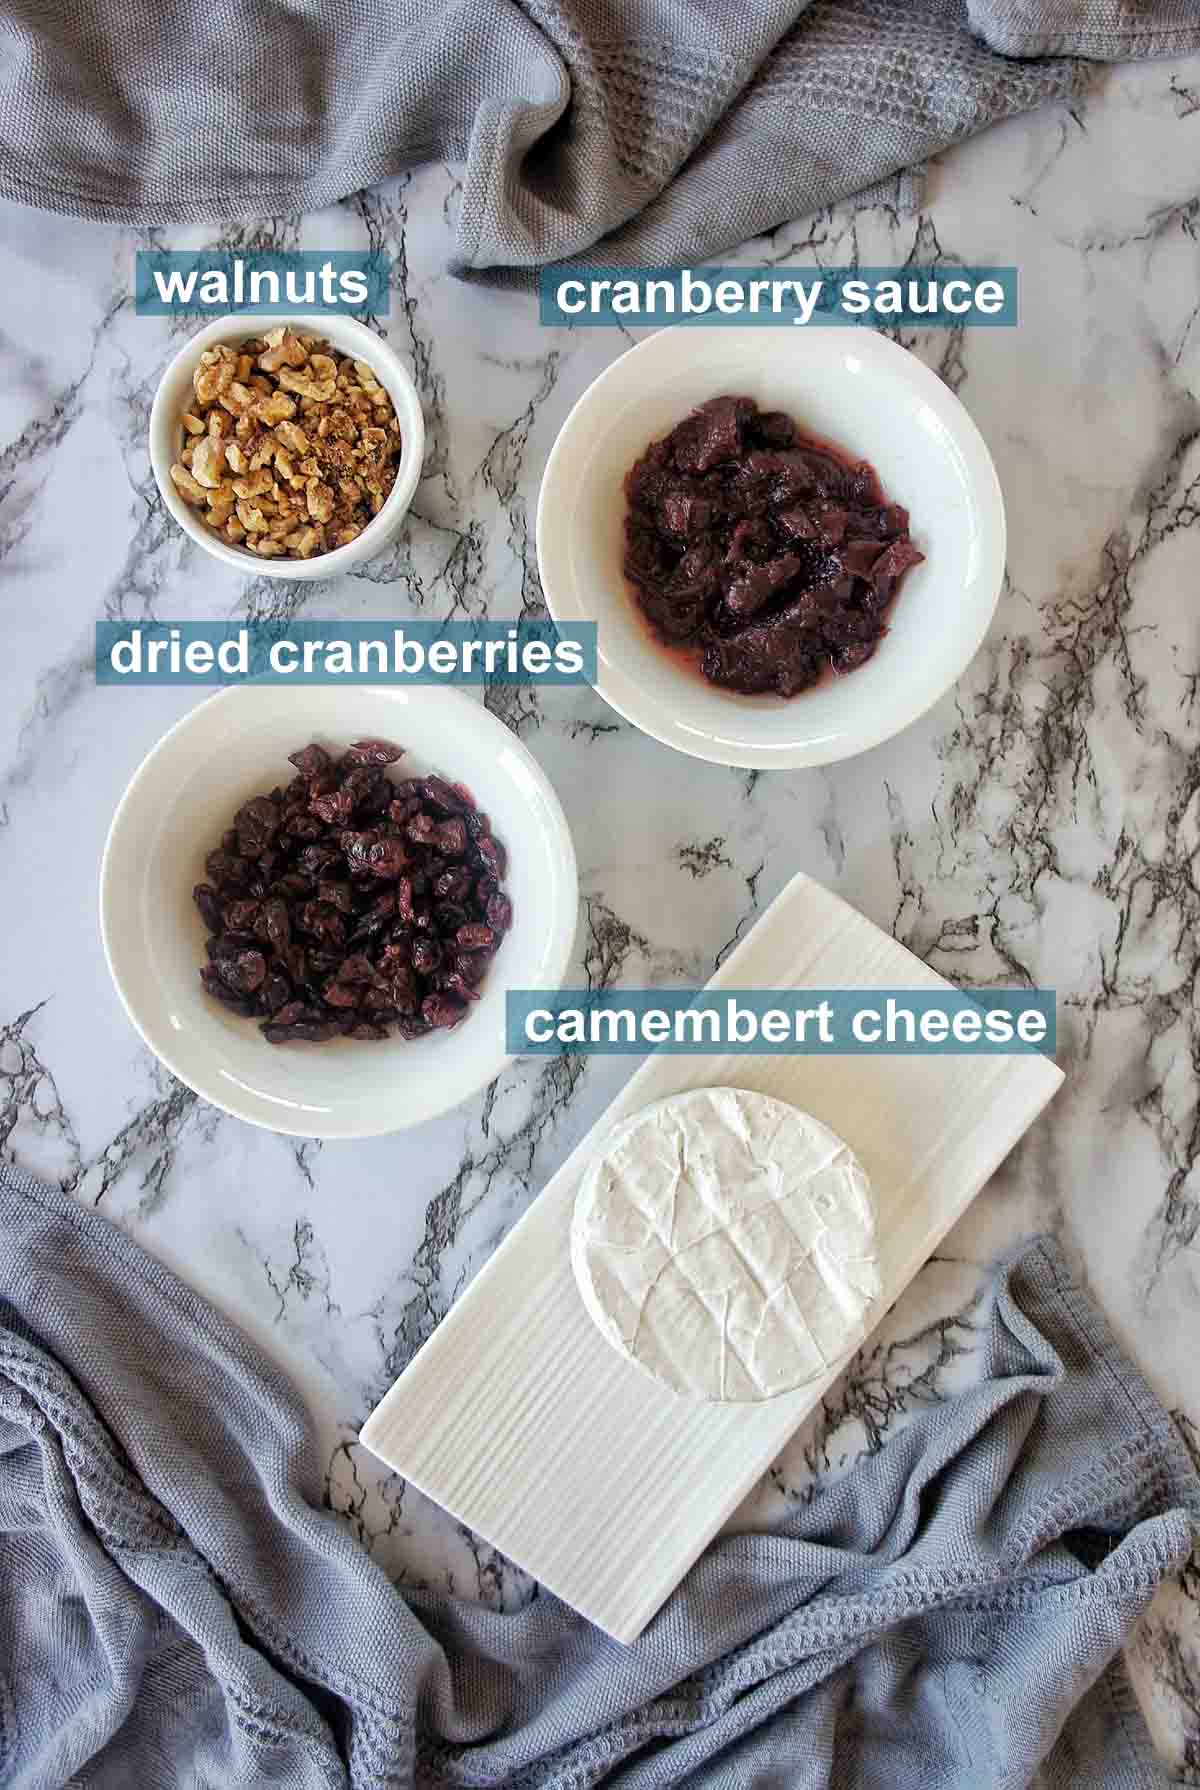 Baked Camembert Cranberry sauce ingredients with text overlay